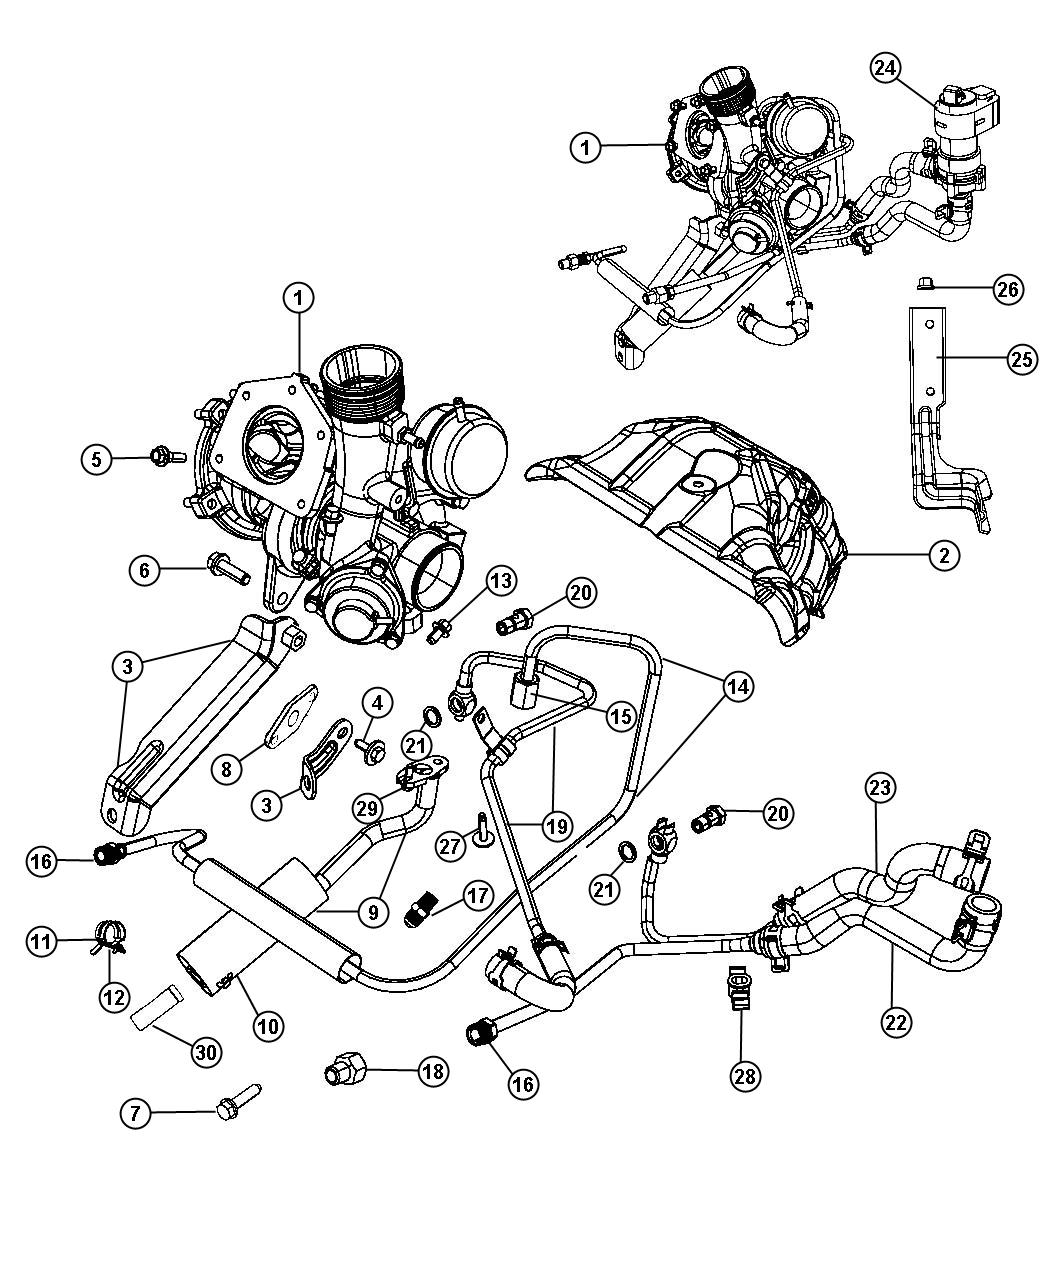 2008 Dodge Avenger Thermostat Location Diagram